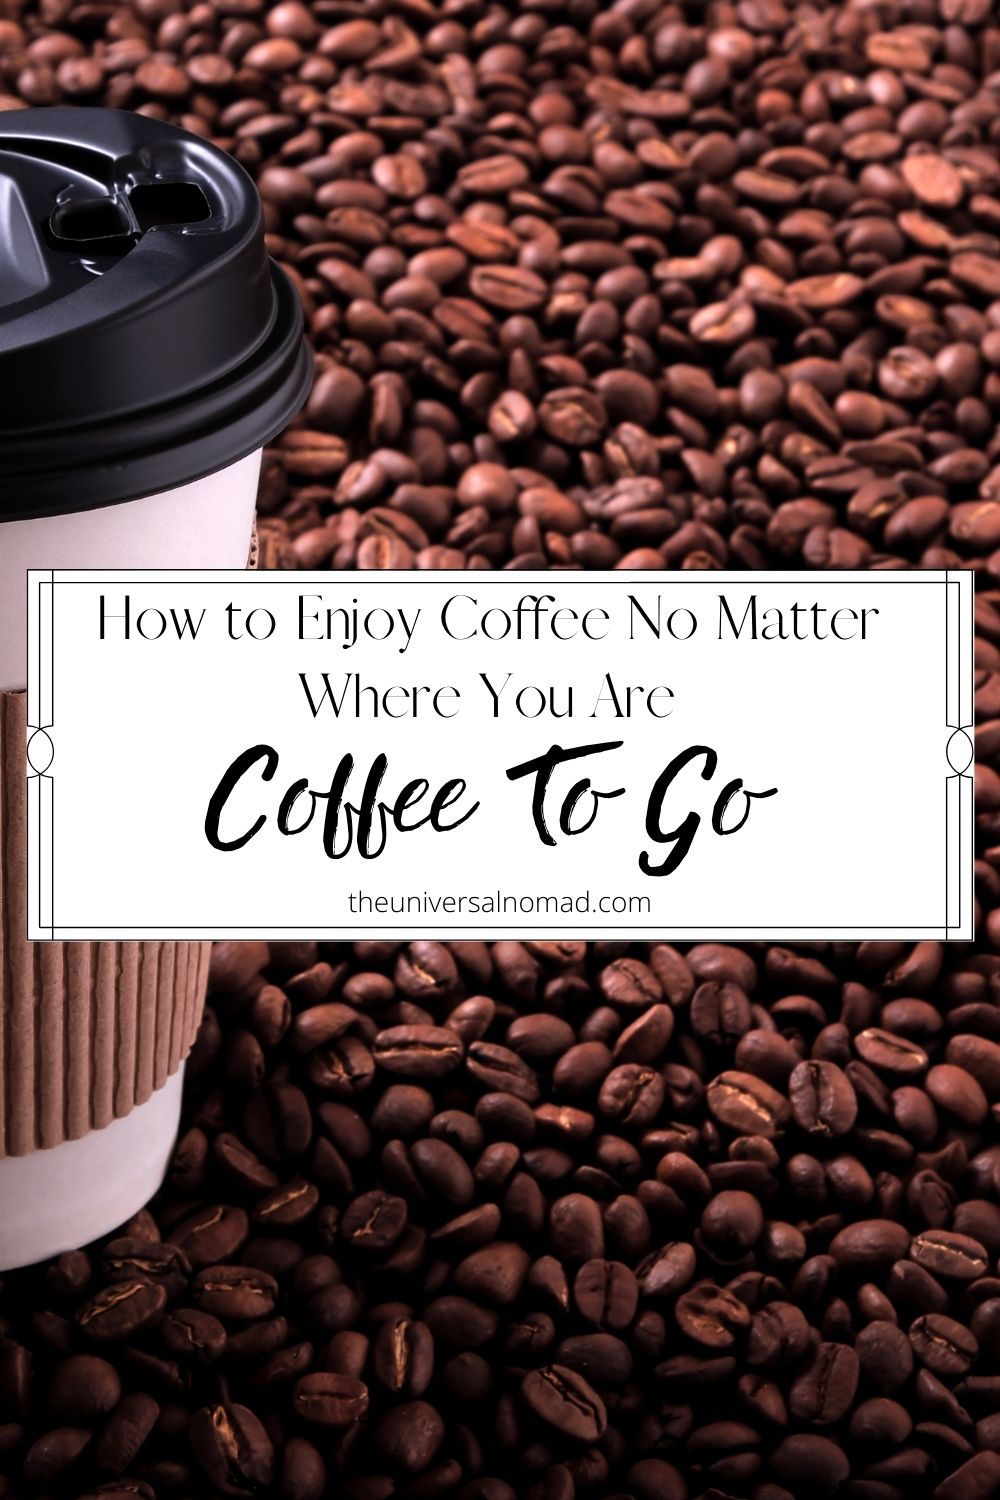 Coffee to go - How to enjoy coffee no matter where you are